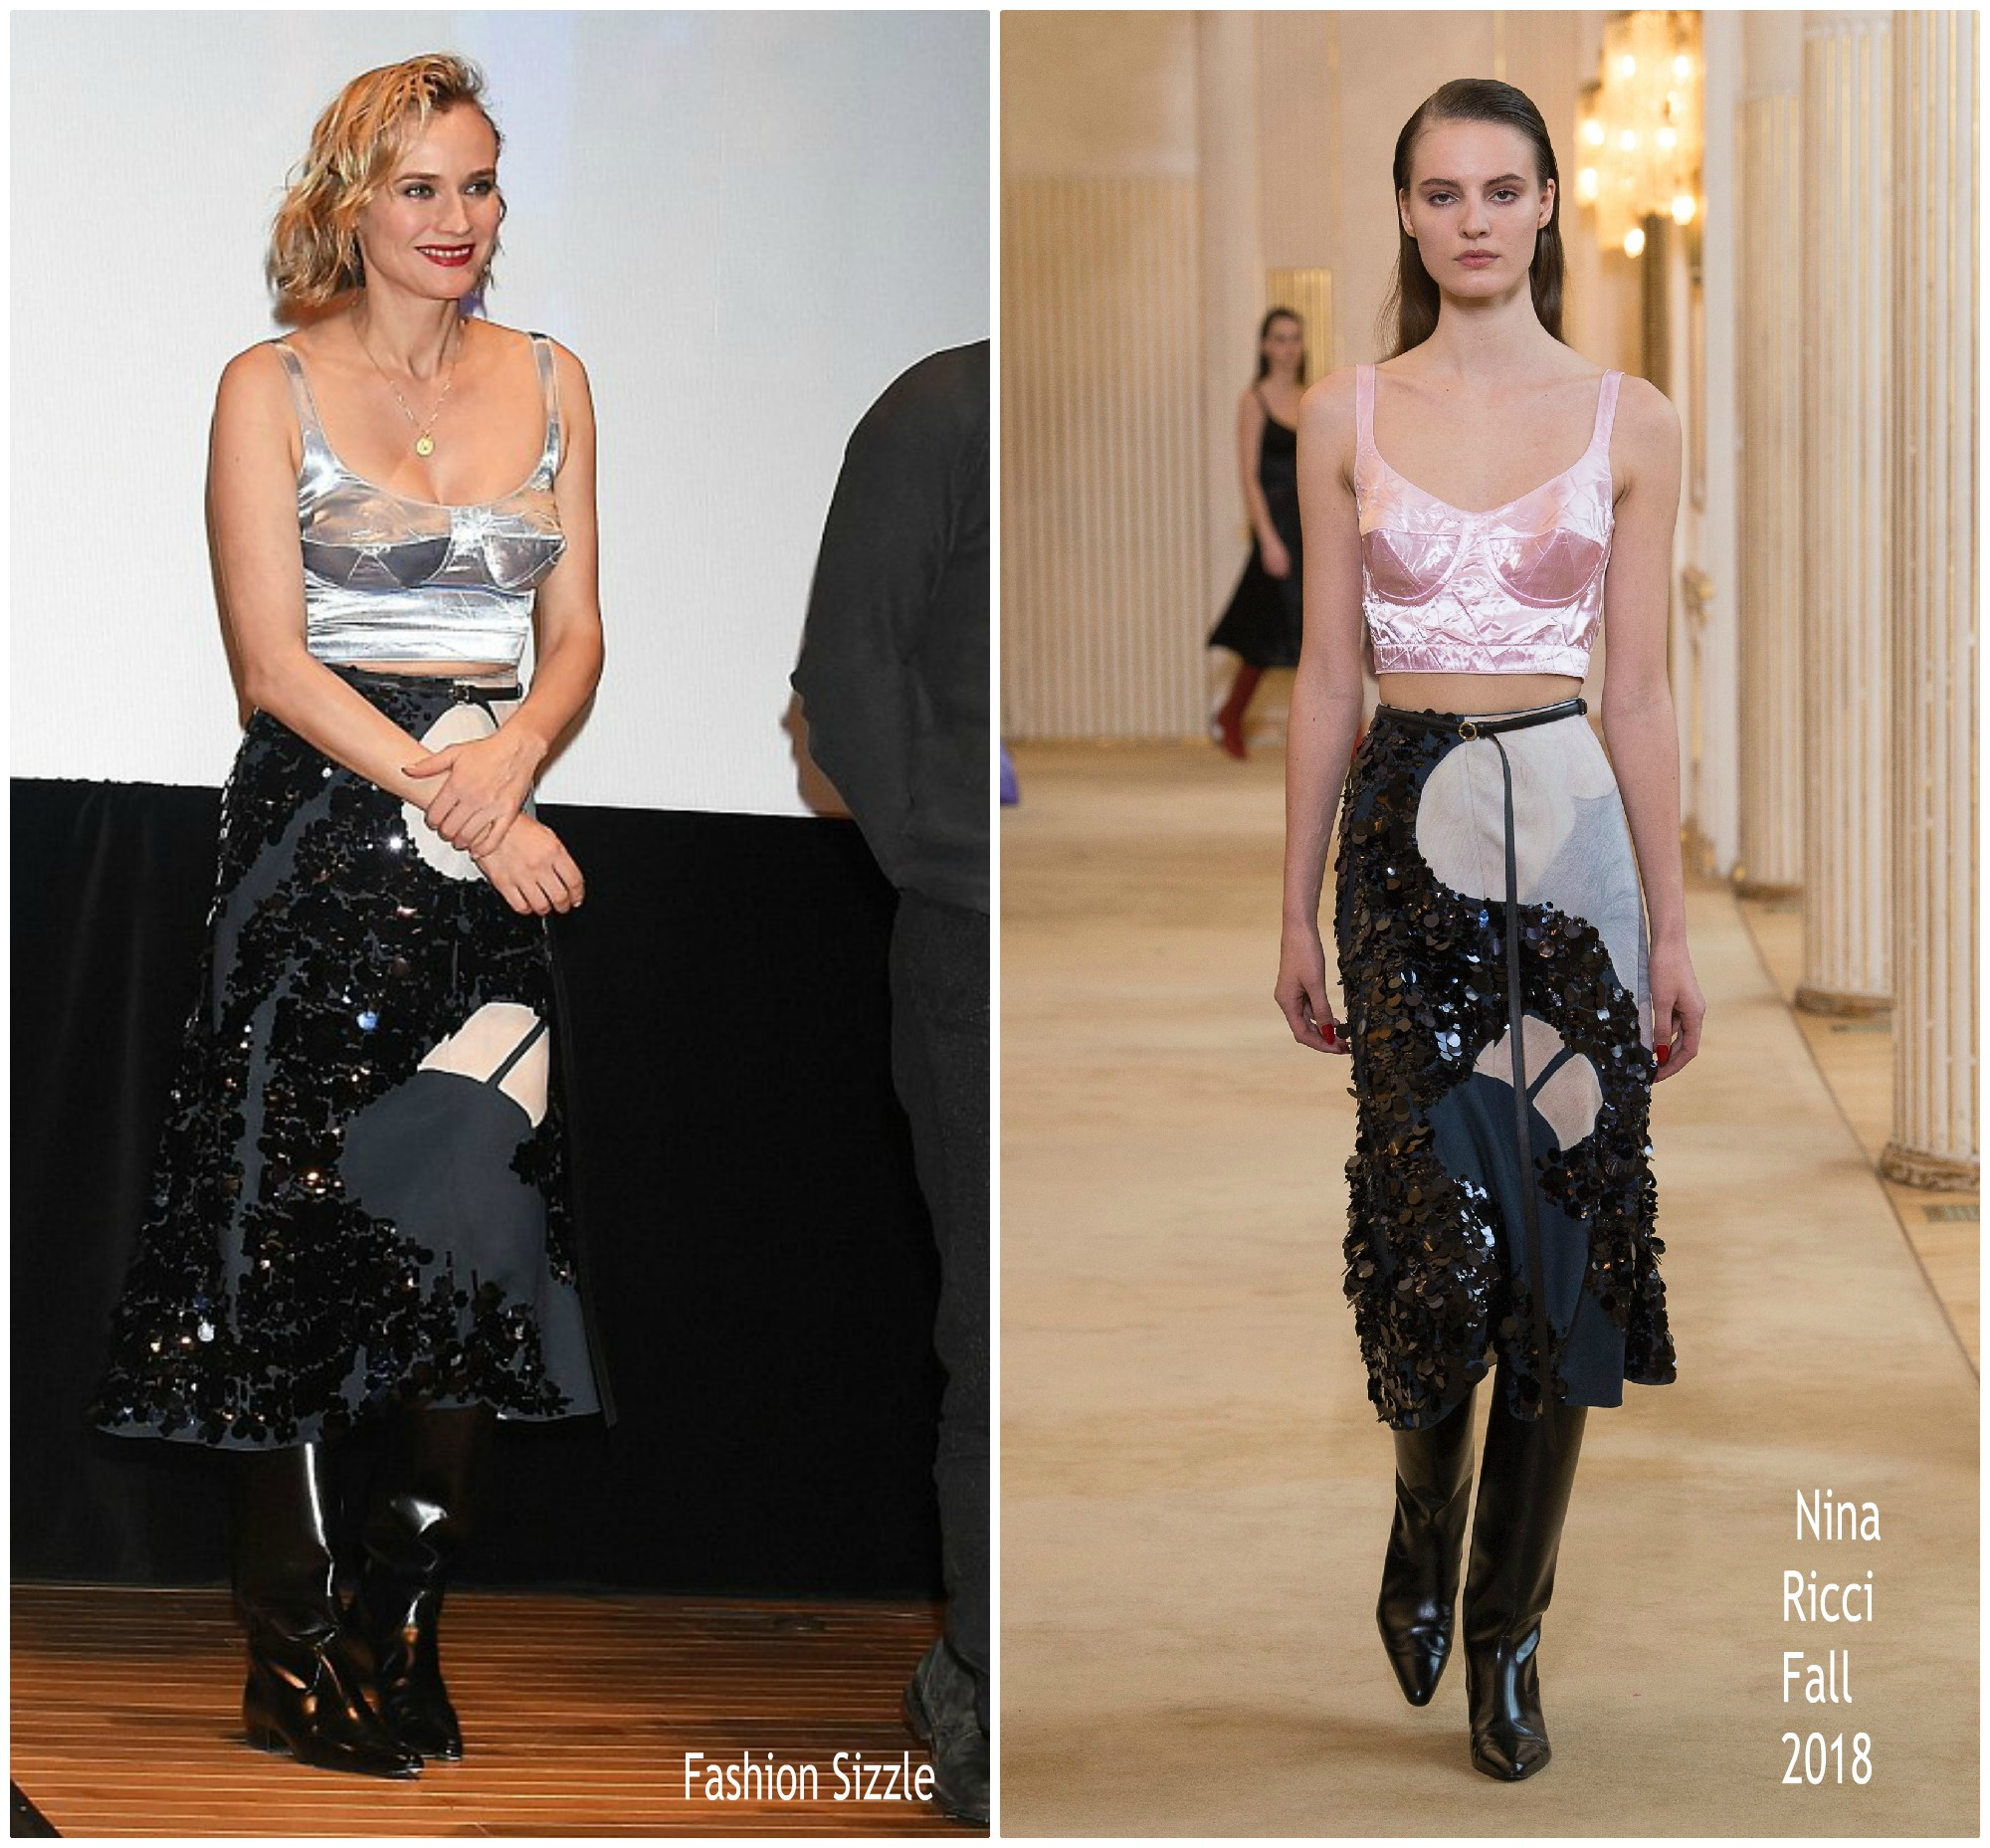 diane-kruger-in-nina-ricci-into-the-fade-tokyo-prono-tour